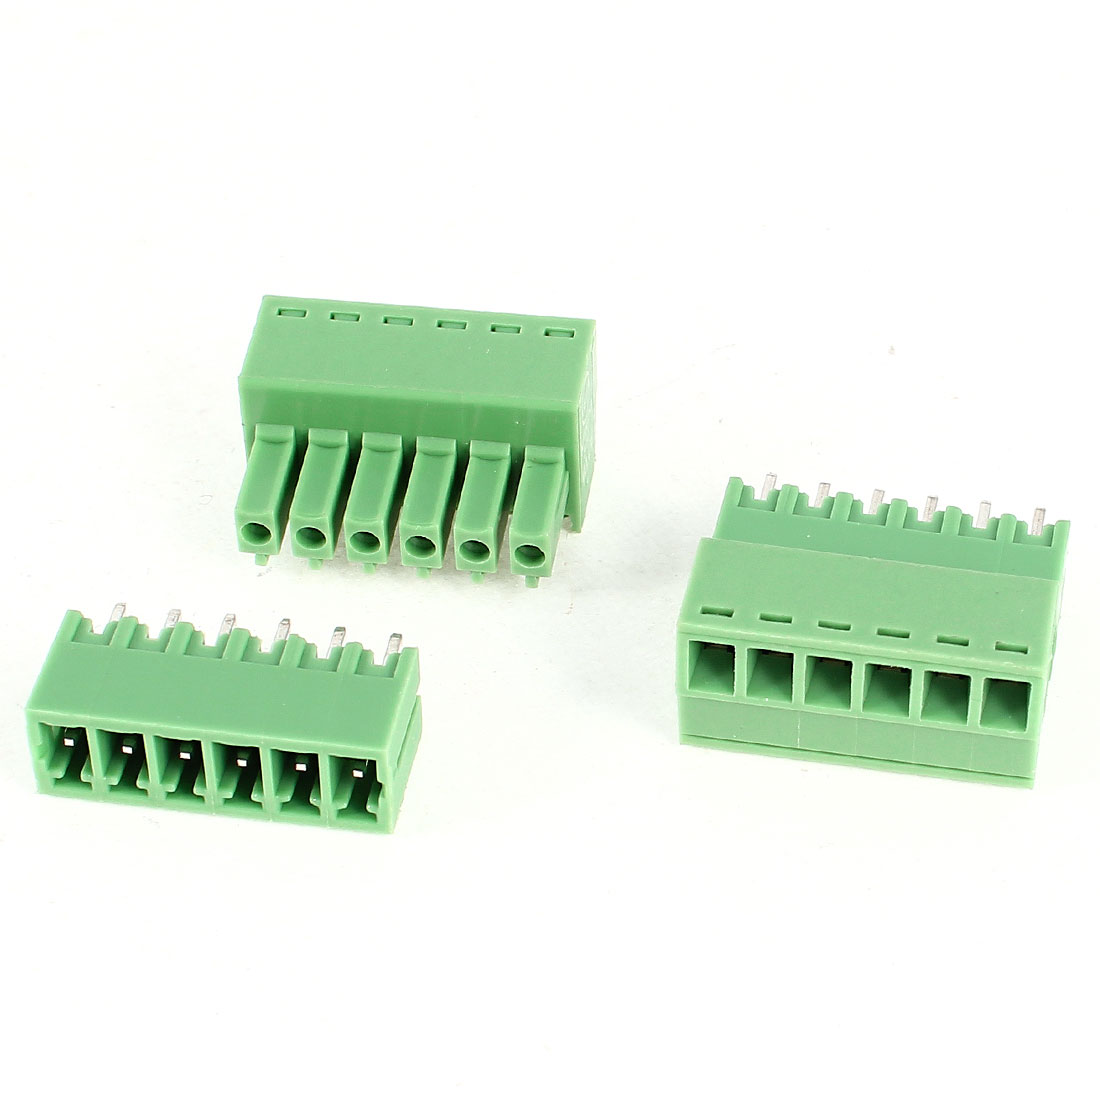 2Pcs 2EDG3.5-6P 3.5mm Pitch 6 Straight Pins Female and Male Wire Pluggable Terminal Barrier Strip Block Connector 300V 8A